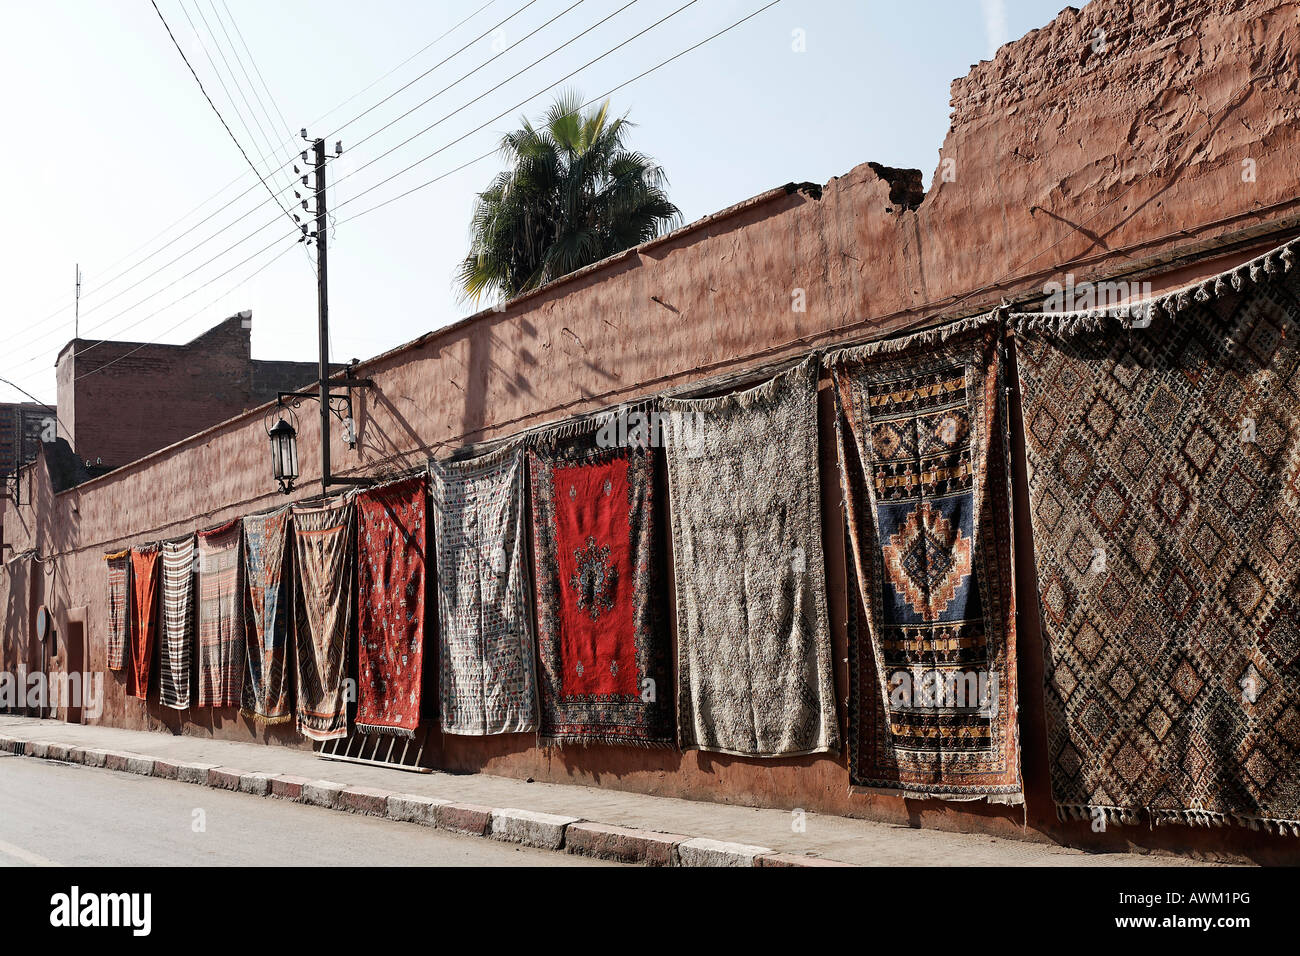 Colourful Berber rugs draped along a long wall in the historic Medina quarter, Marrakesh, Morocco, Africa - Stock Image